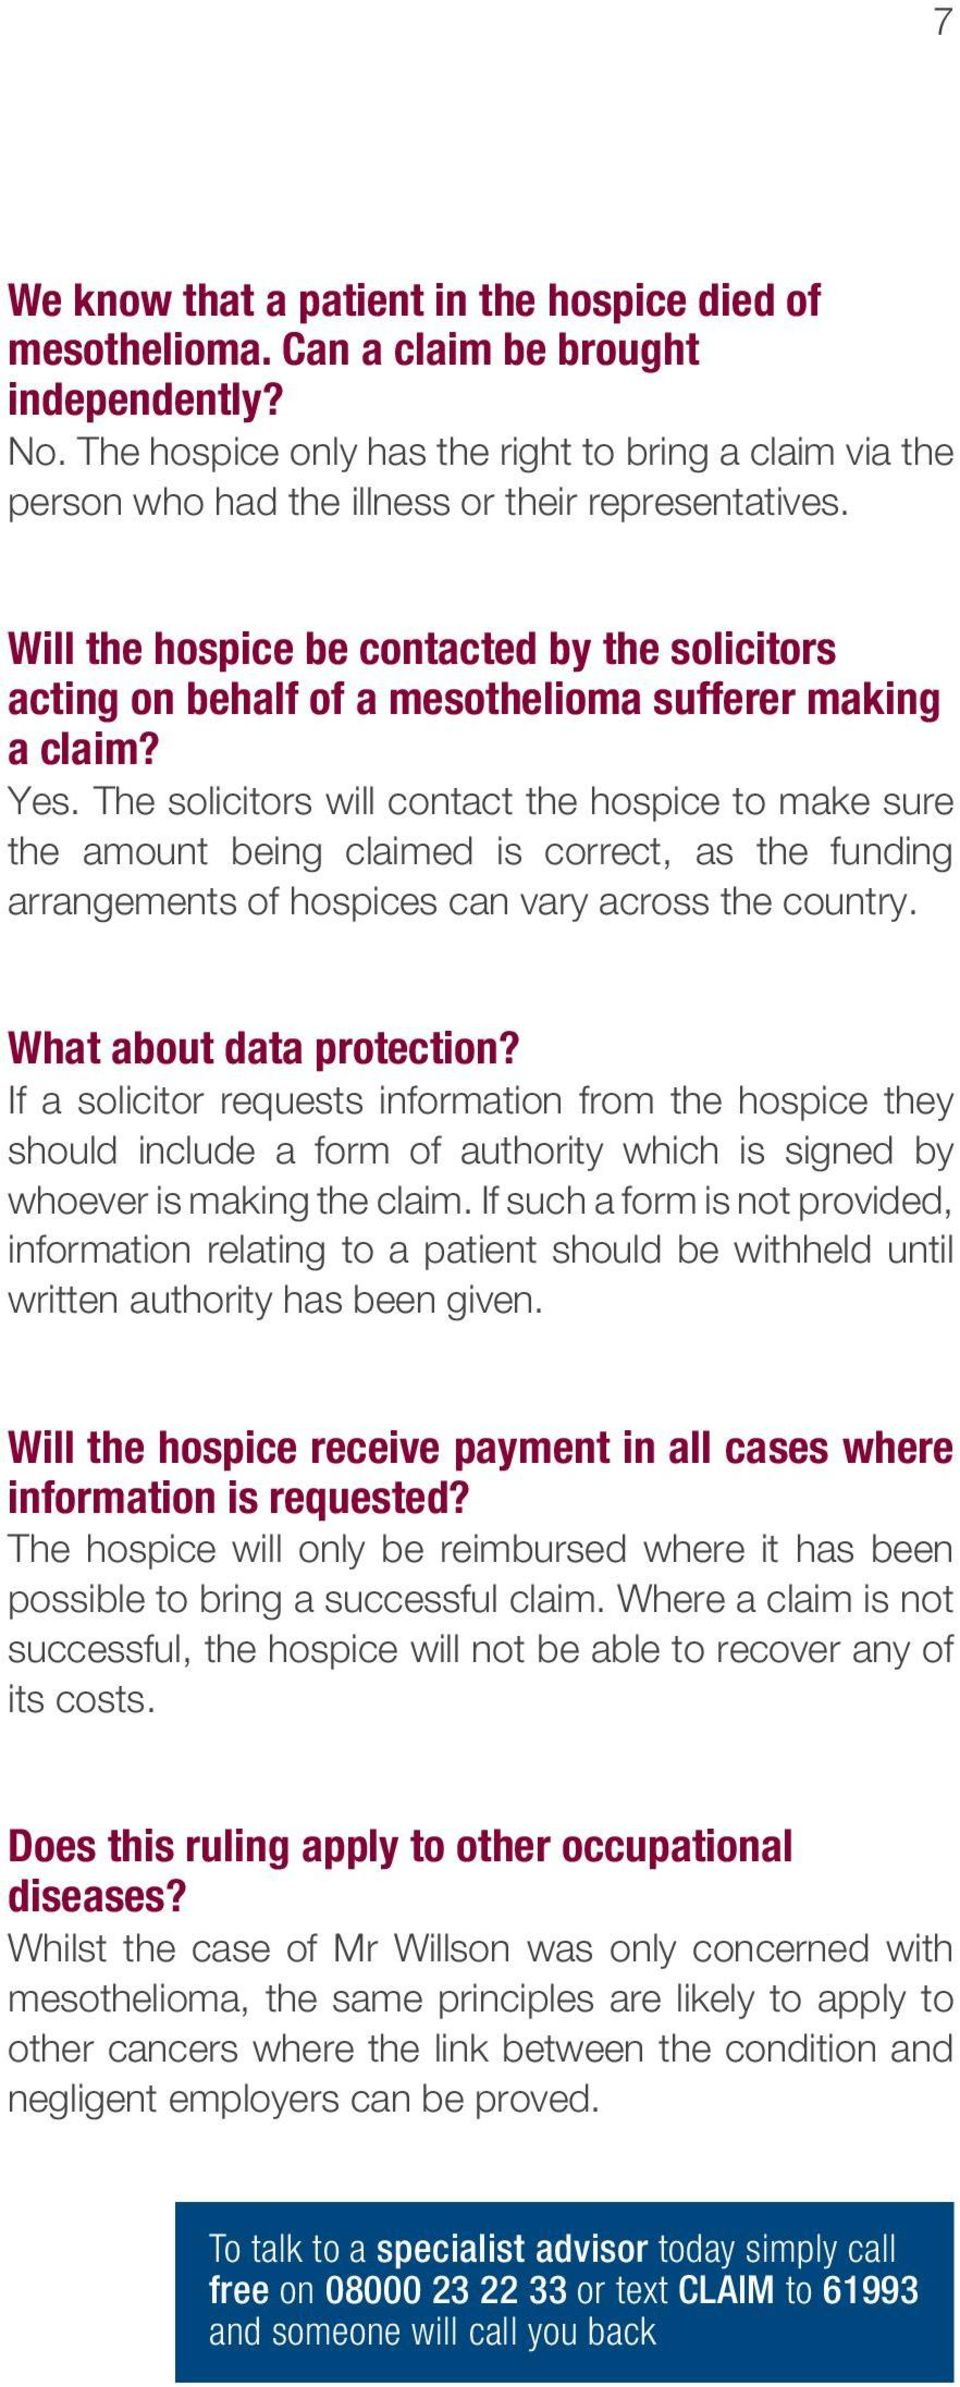 Will the hospice be contacted by the solicitors acting on behalf of a mesothelioma sufferer making a claim? Yes.